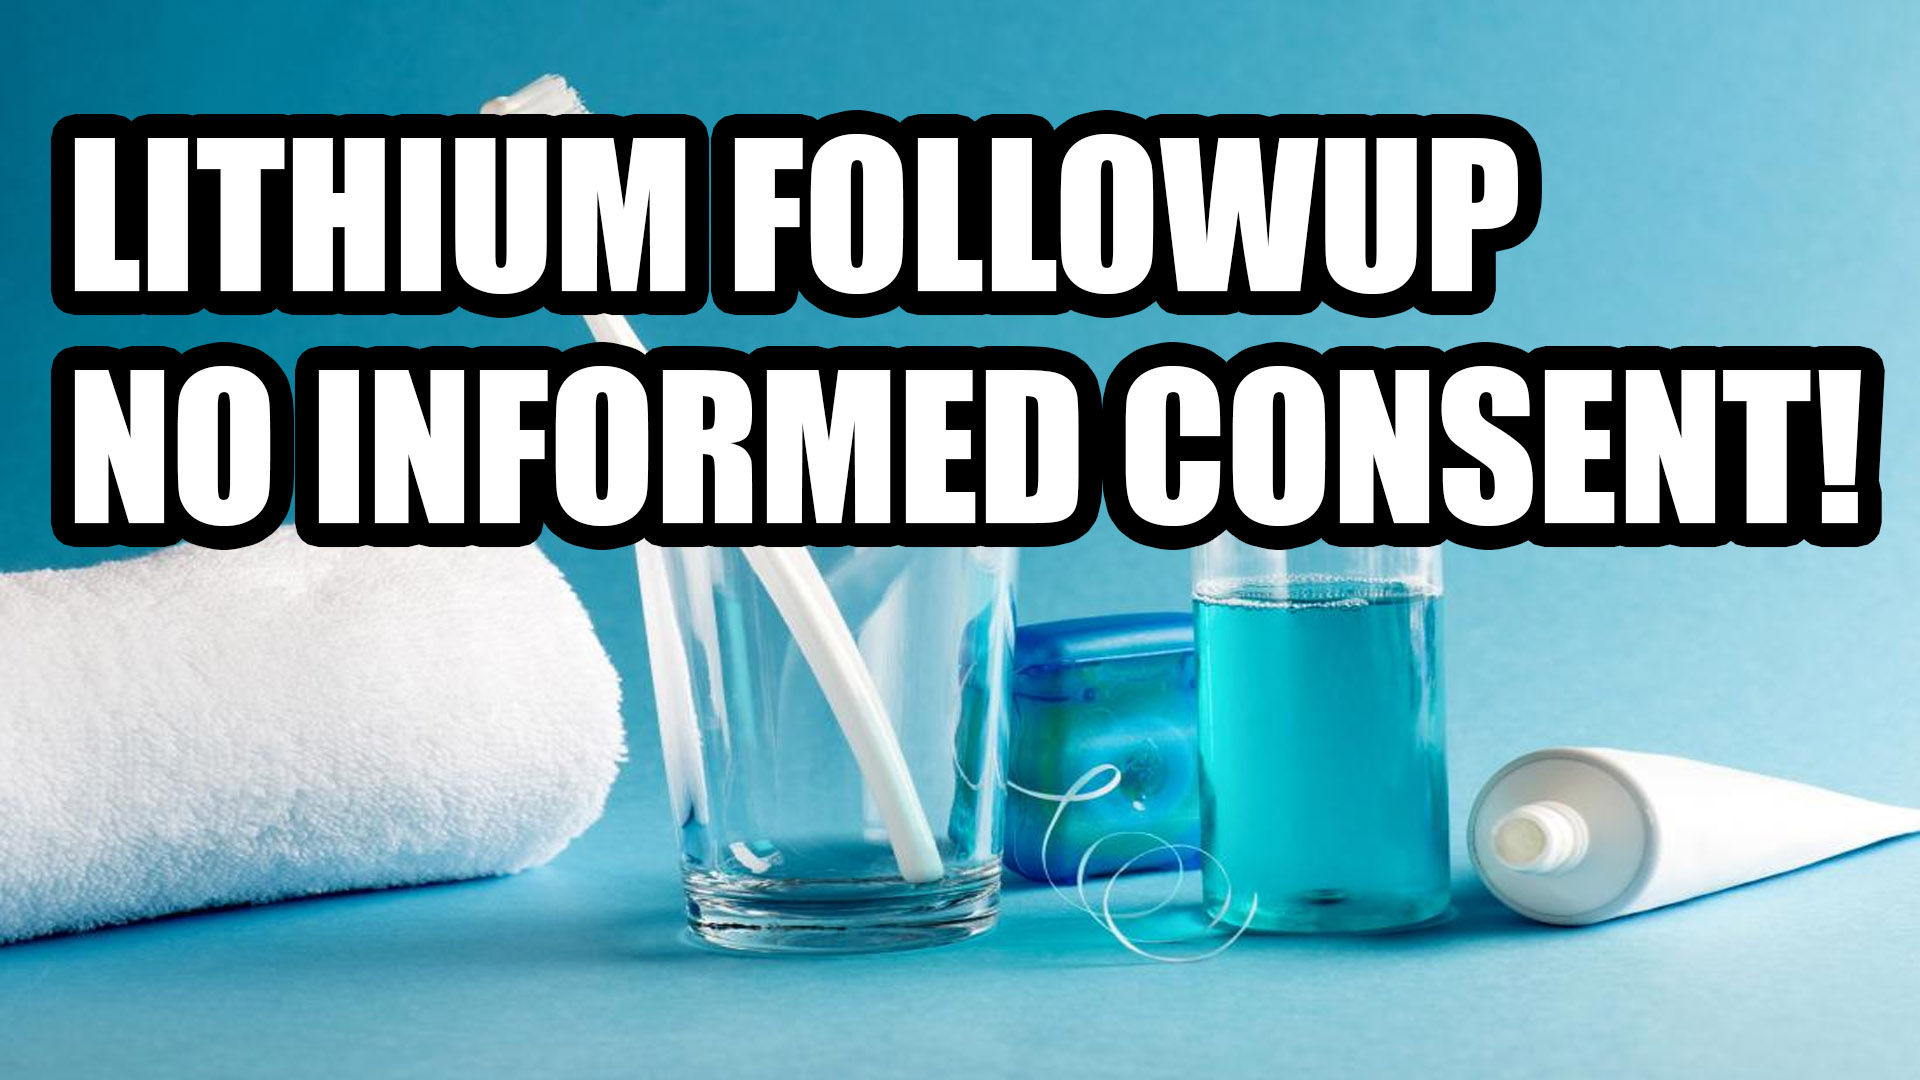 Lithium Followup - No Informed Consent